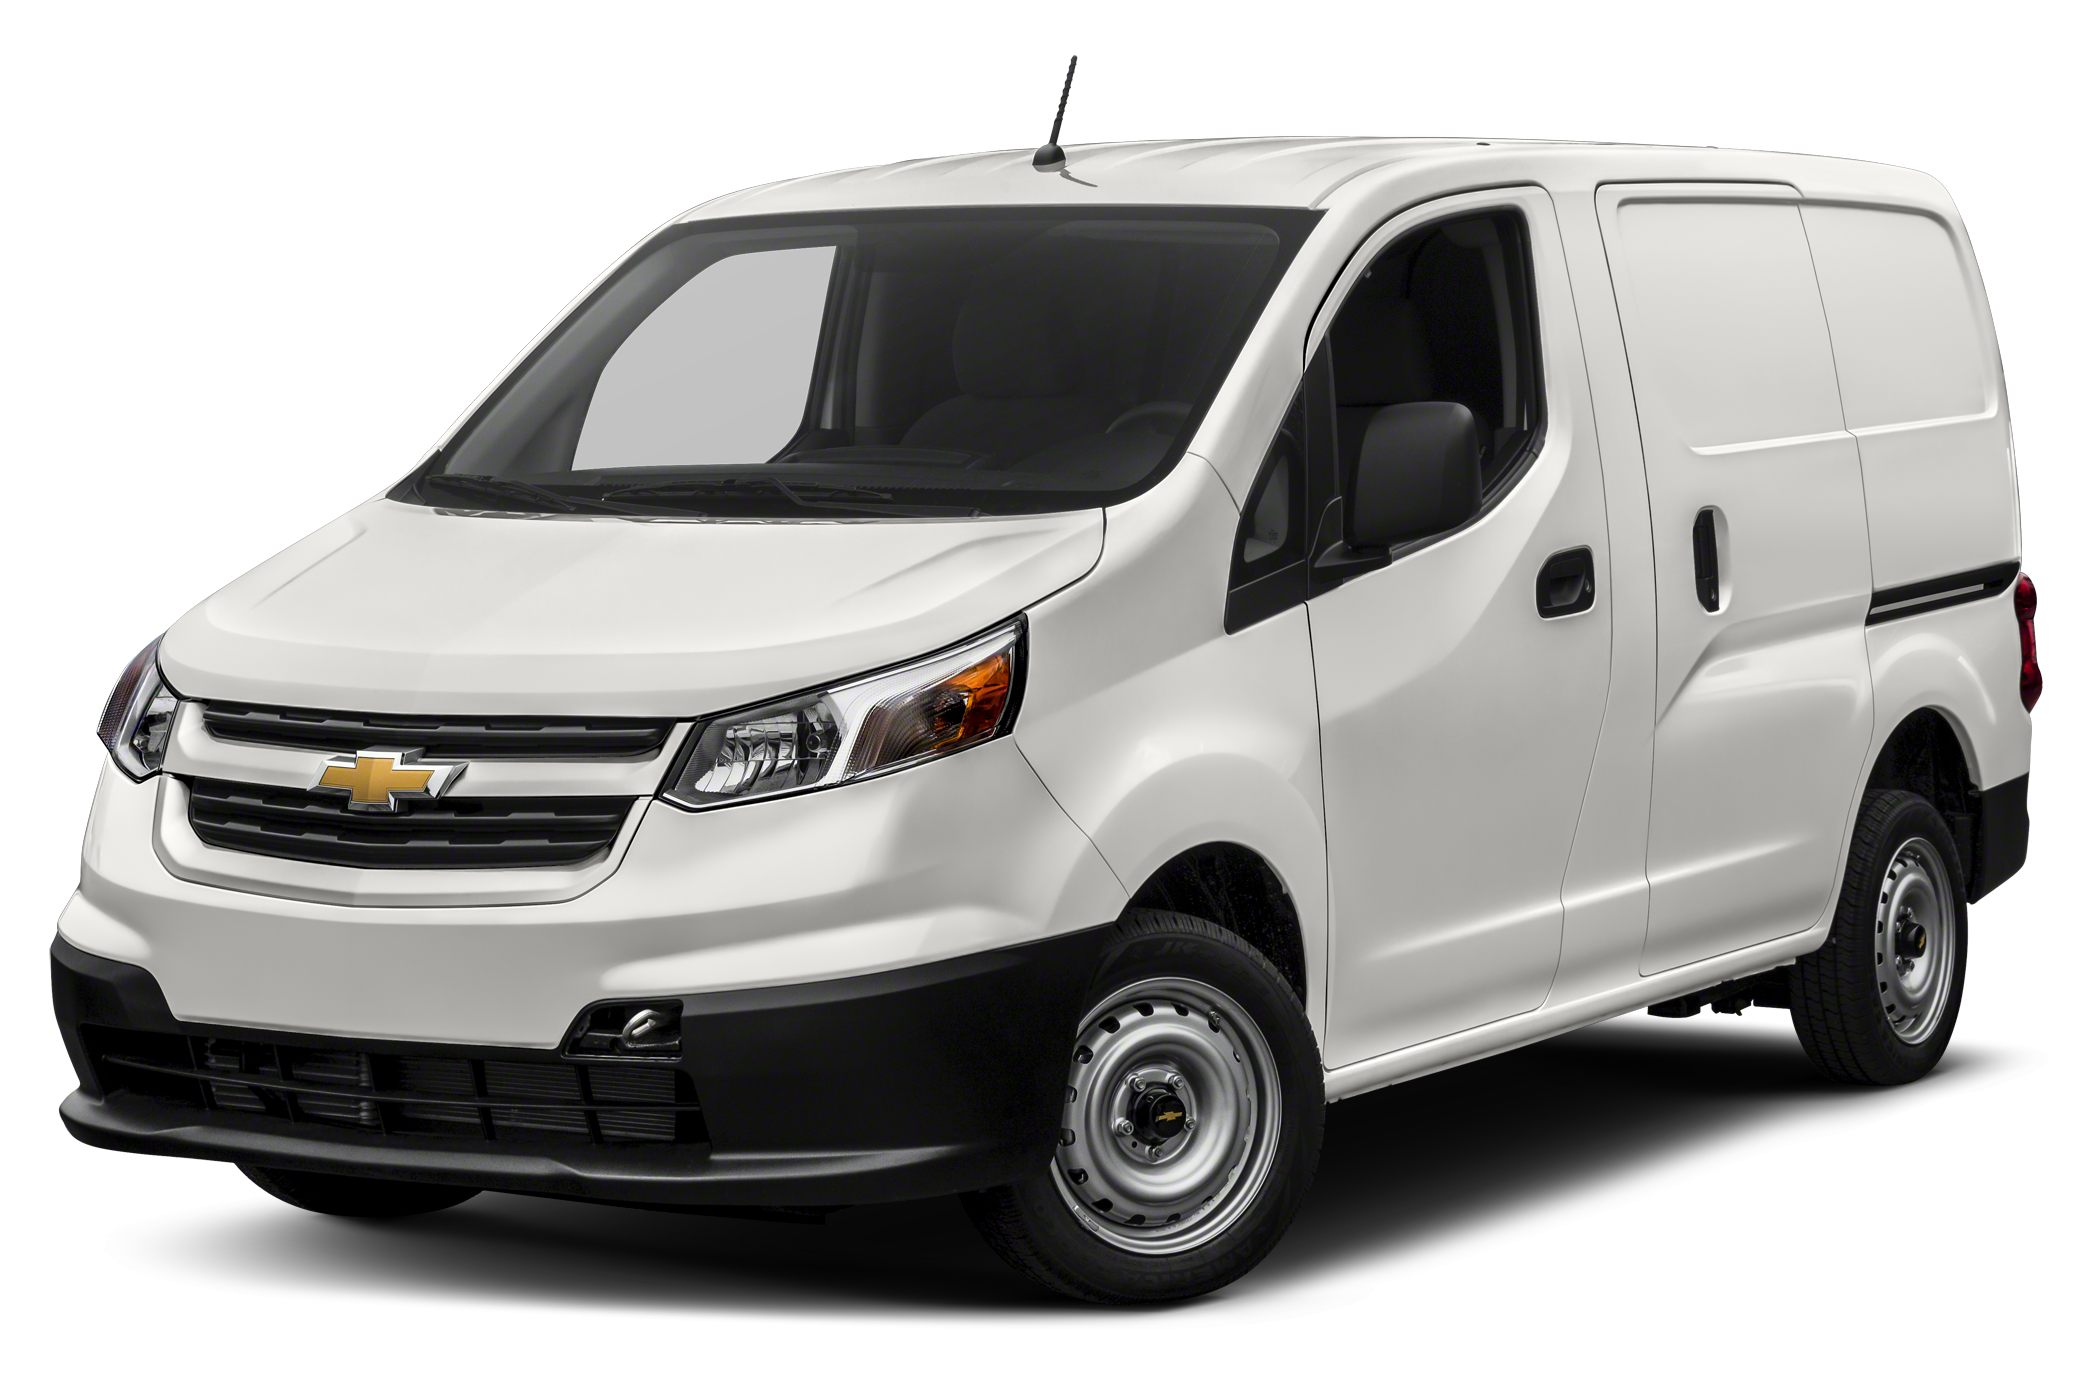 2015 Chevrolet City Express 1LT Cargo Van for sale in Greenville for $25,645 with 5 miles.